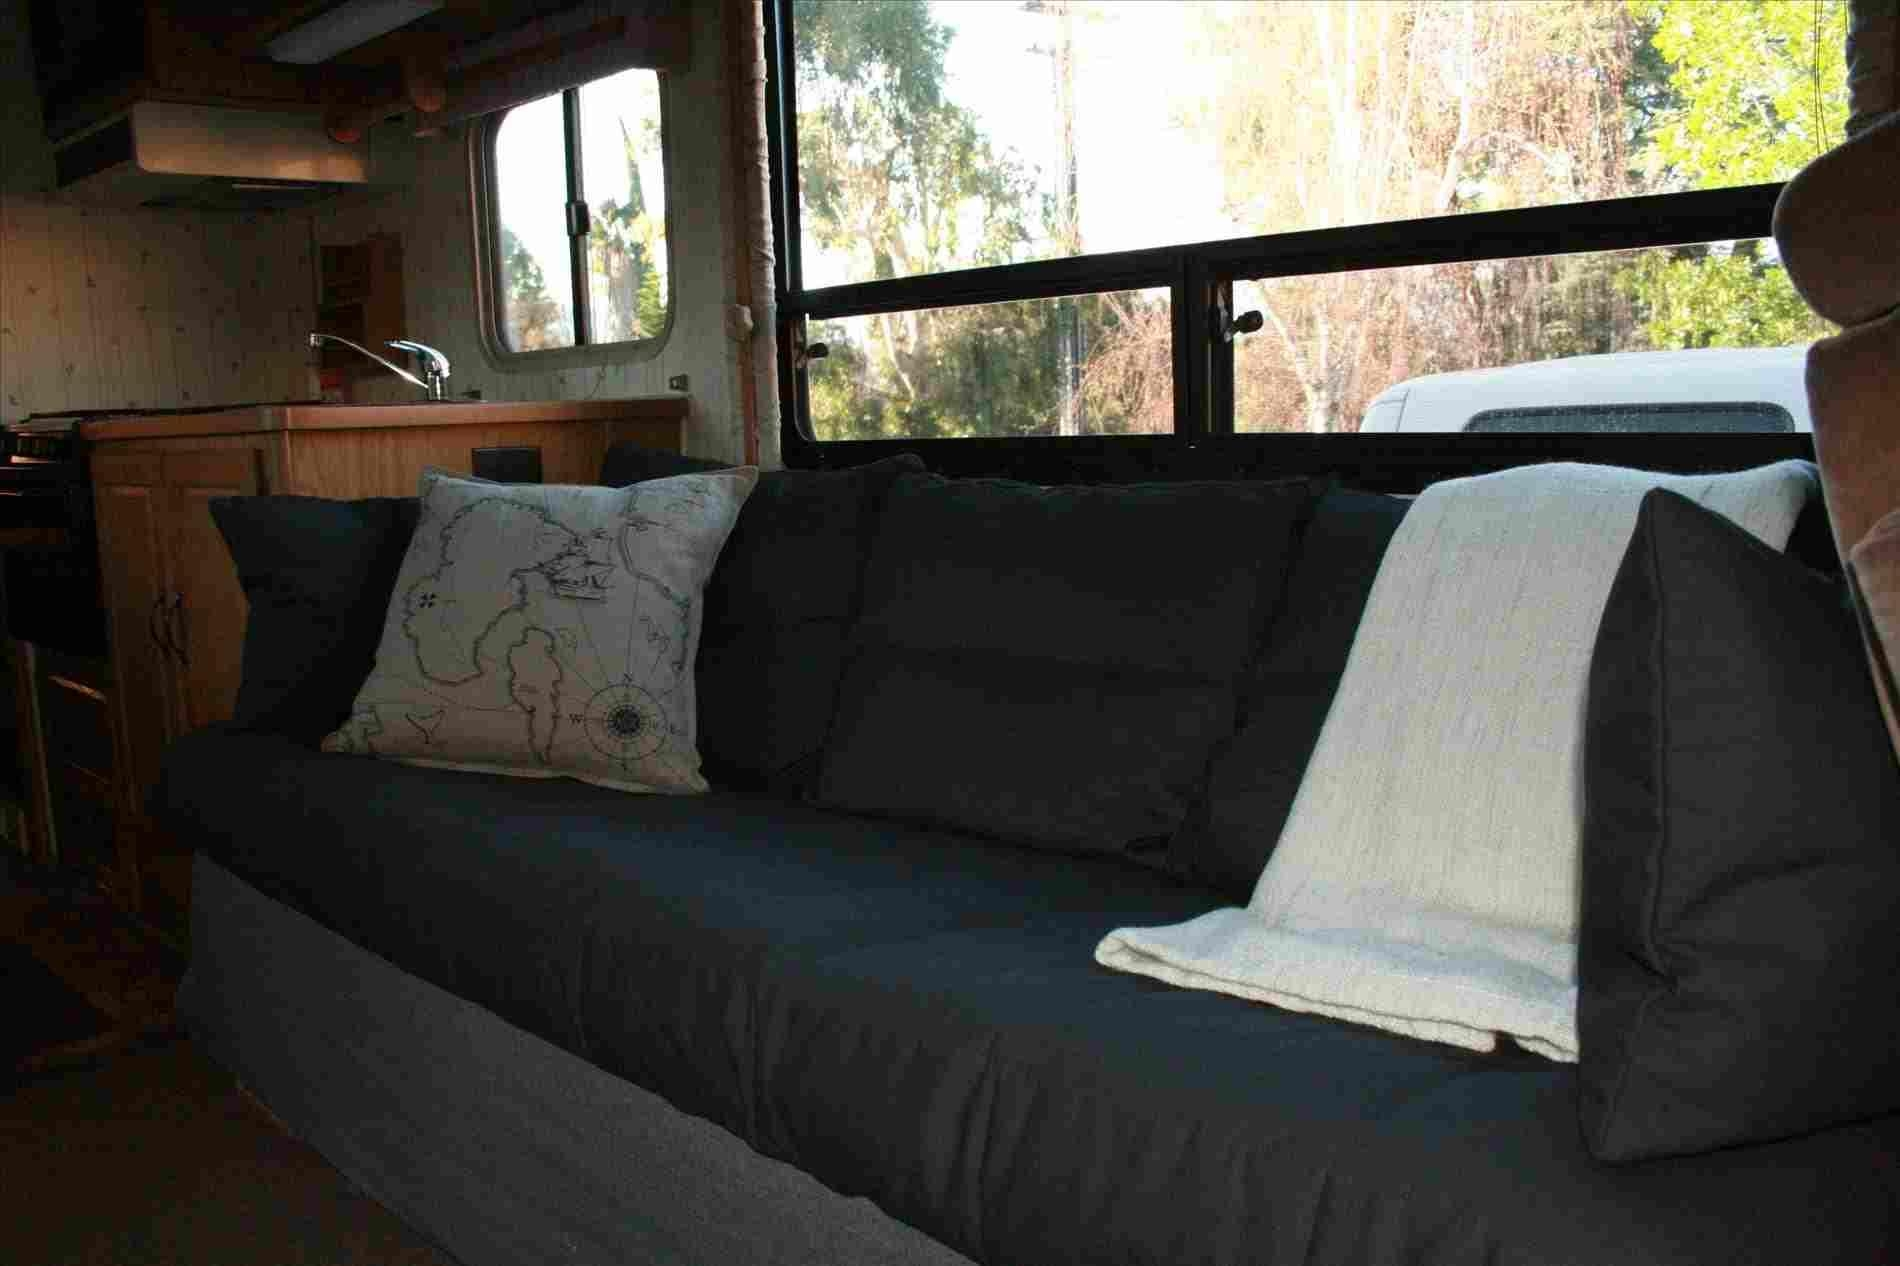 Jackknife Sofa For Rv | Sofa And Chair Information Inside Rv Jackknife Sofas (Image 5 of 20)